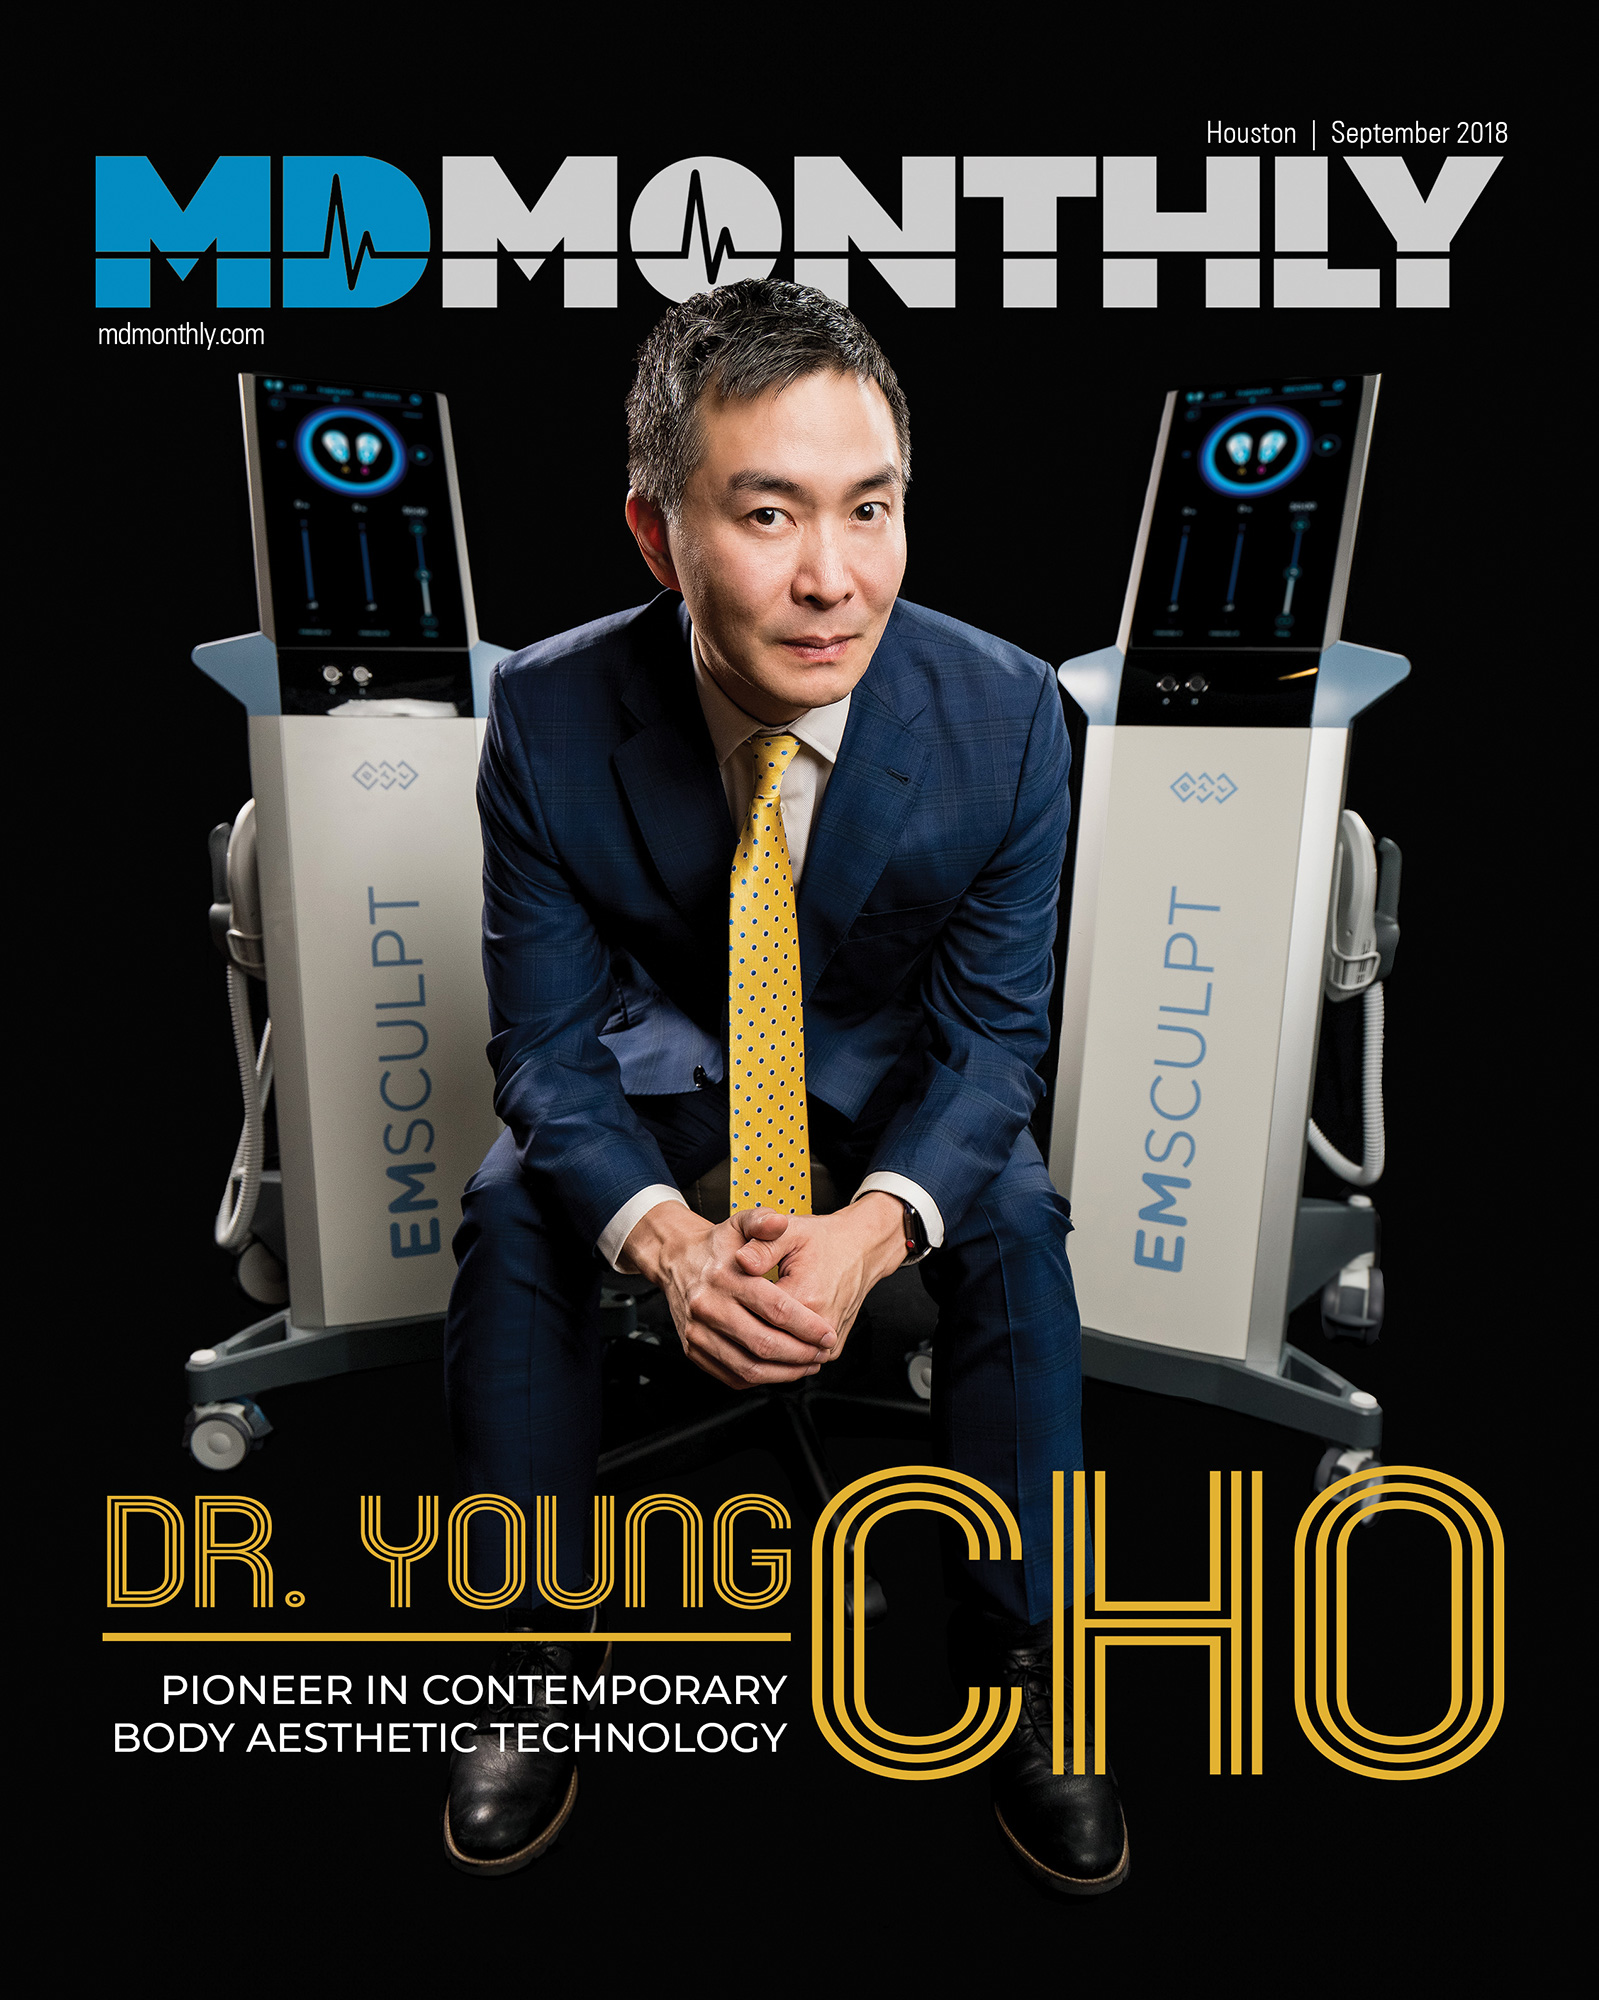 Doctor Profile - MD MONTHLY - Dr. Young Cho is a Board Certified Plastic Surgeon and the Director and Owner of Integrated Aesthetics located in Spring, Texas. The practice serves patients in Houston, The Woodlands, Spring, Tomball and the surrounding areas.